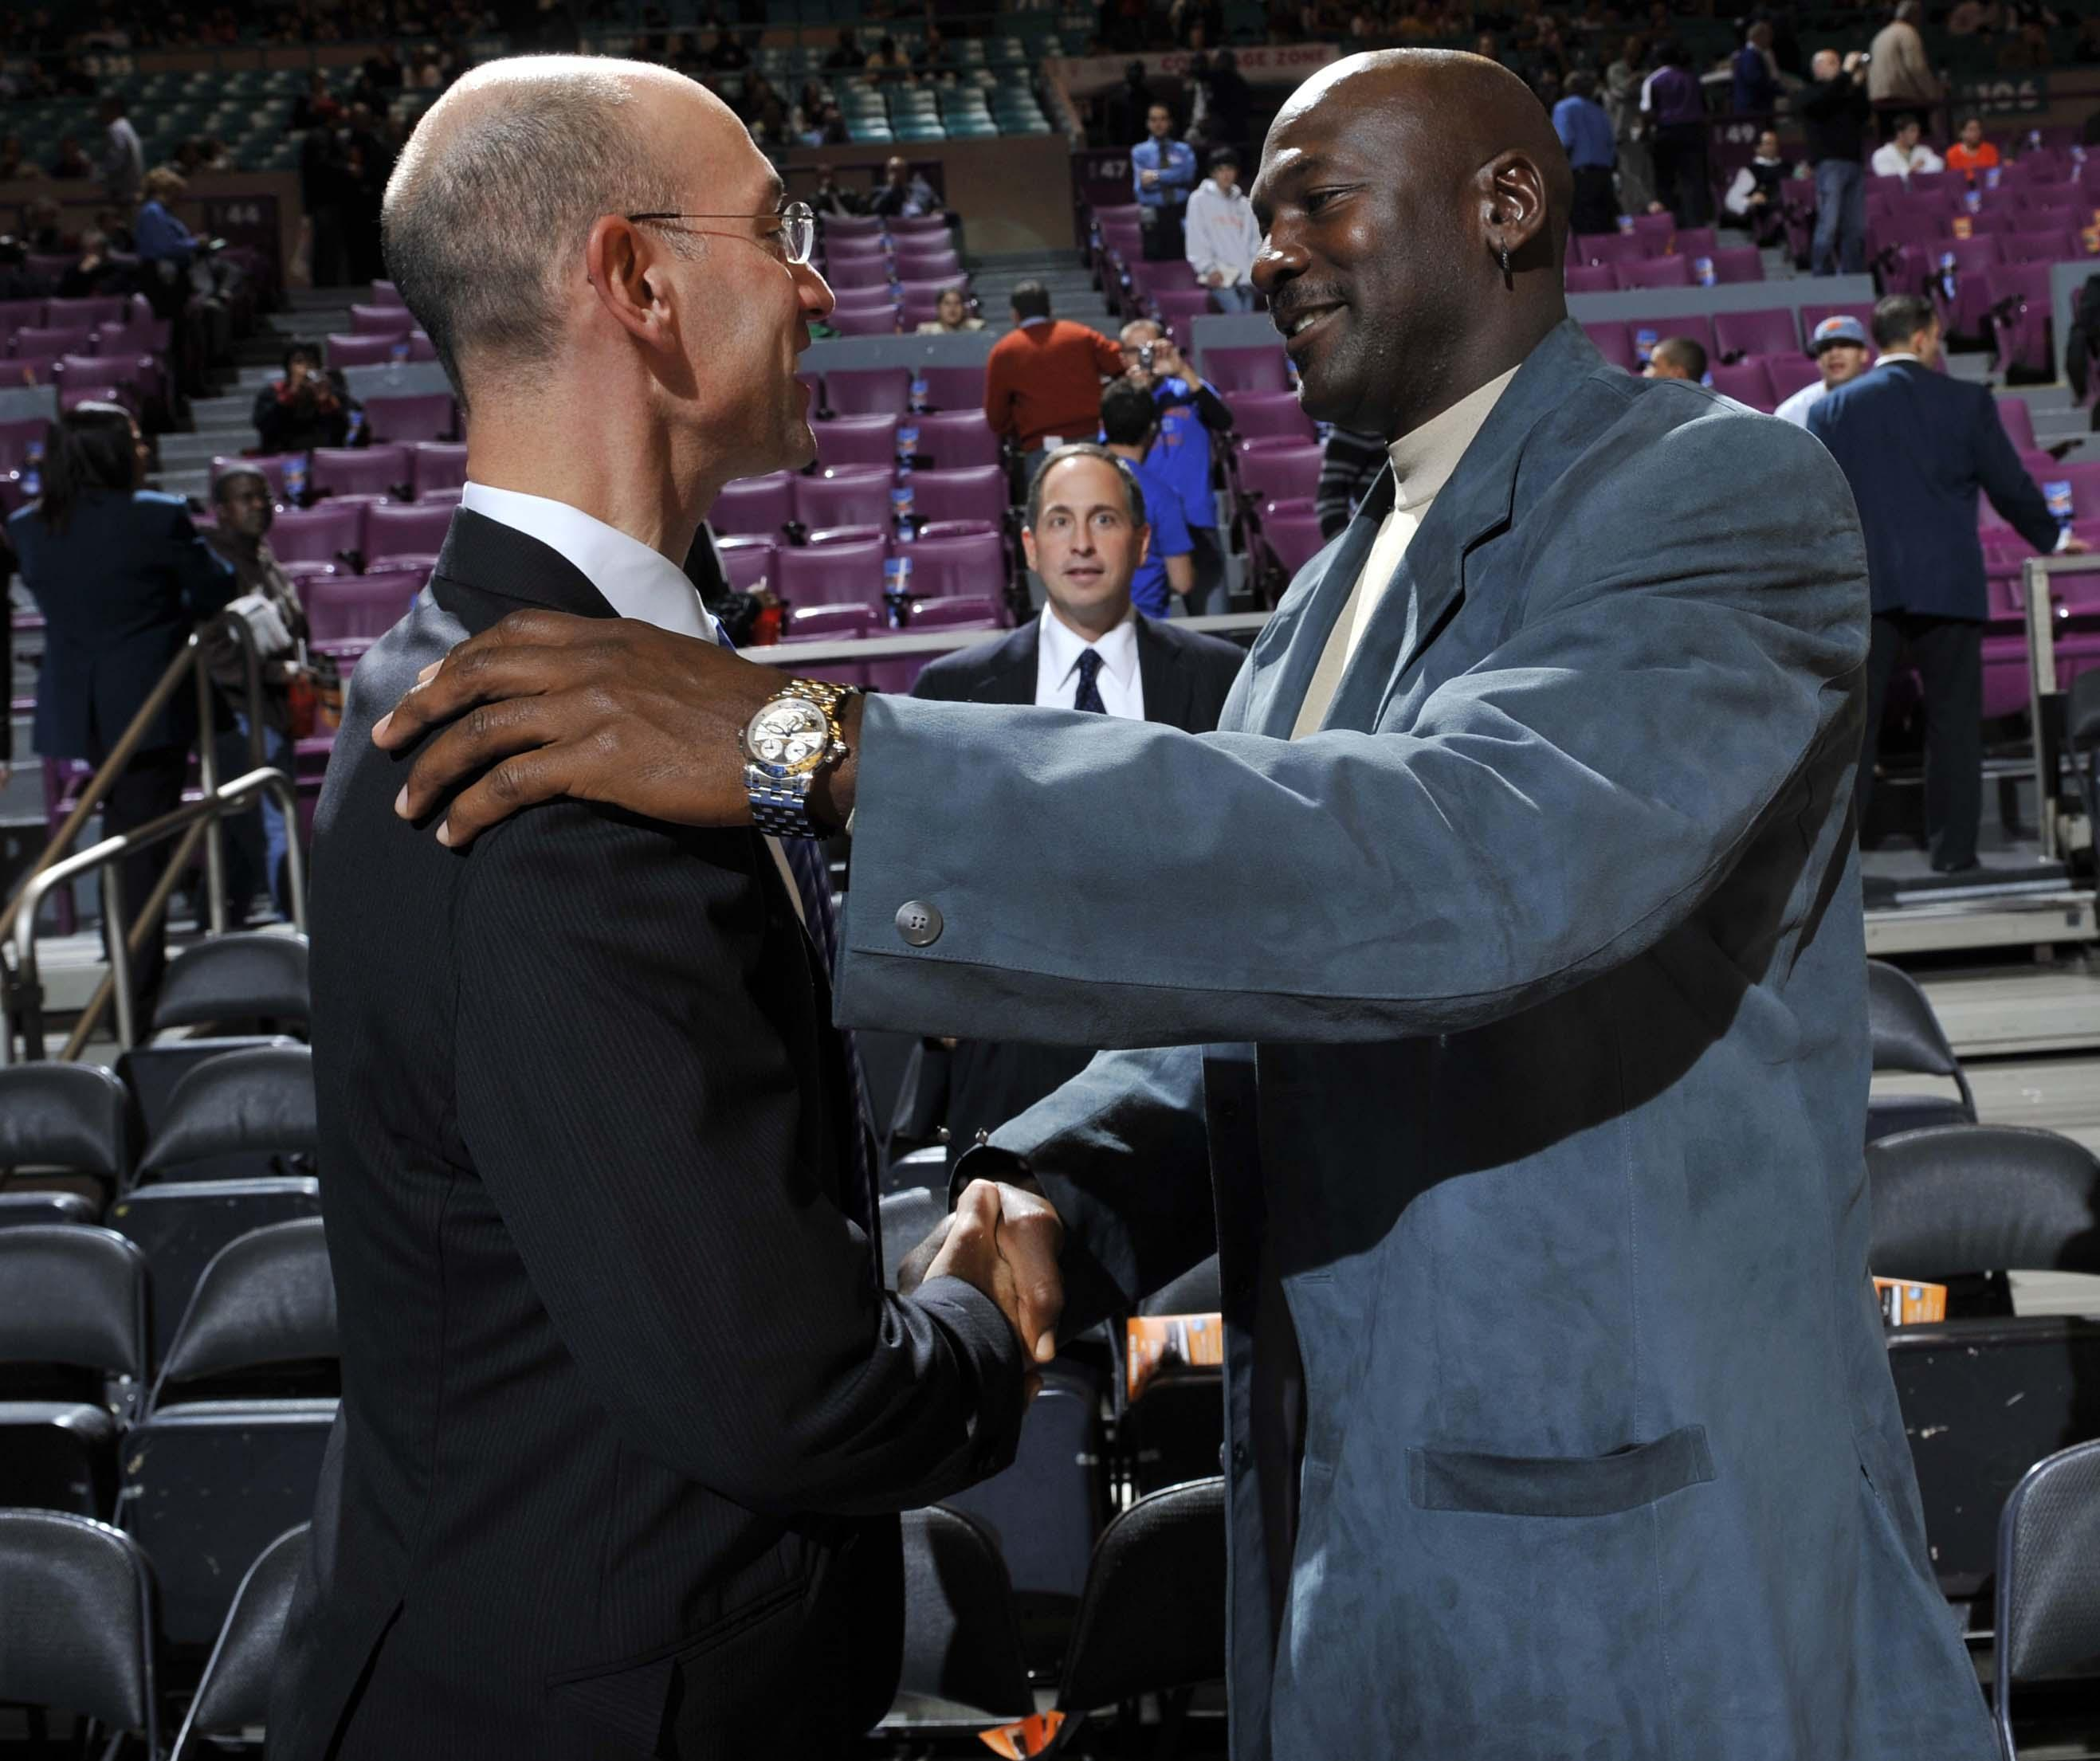 609b859e162 NBA commissioner Adam Silver says Jordan 'brings unique credibility to the  table' during talks between owners and players.